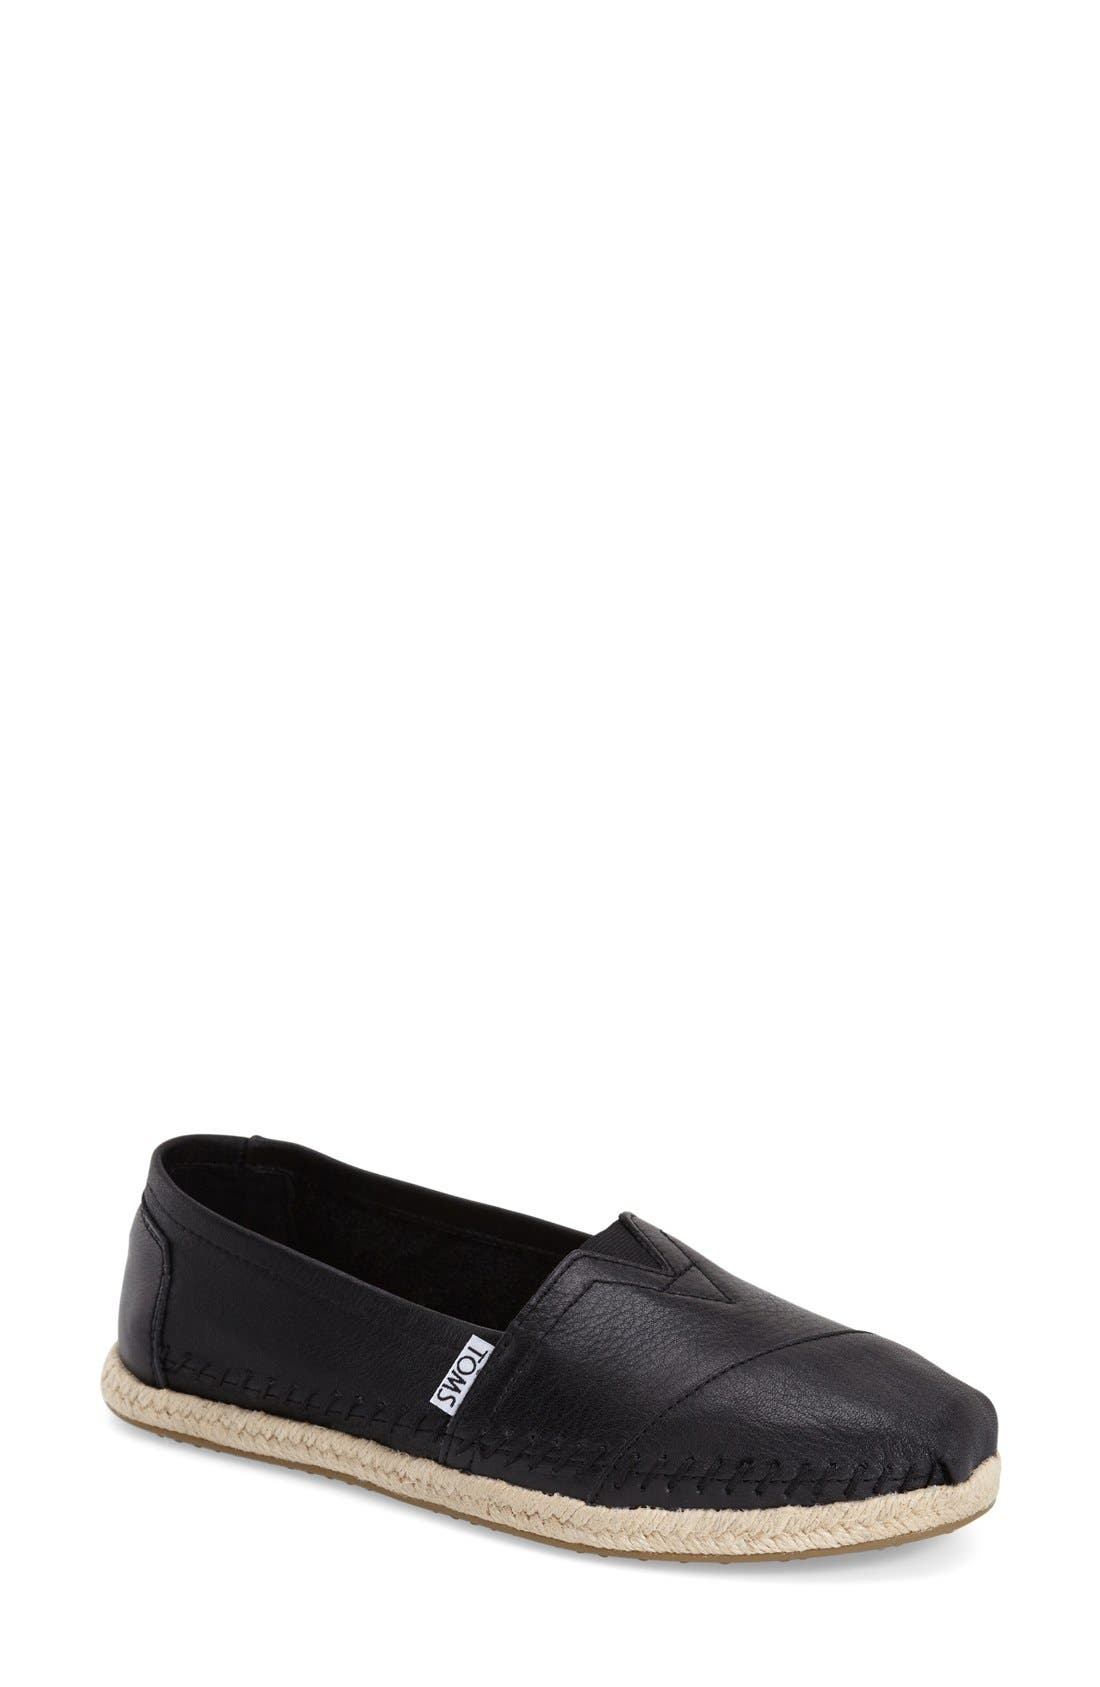 TOMS 'Classic - Leather' Espadrille Slip-On (Women)